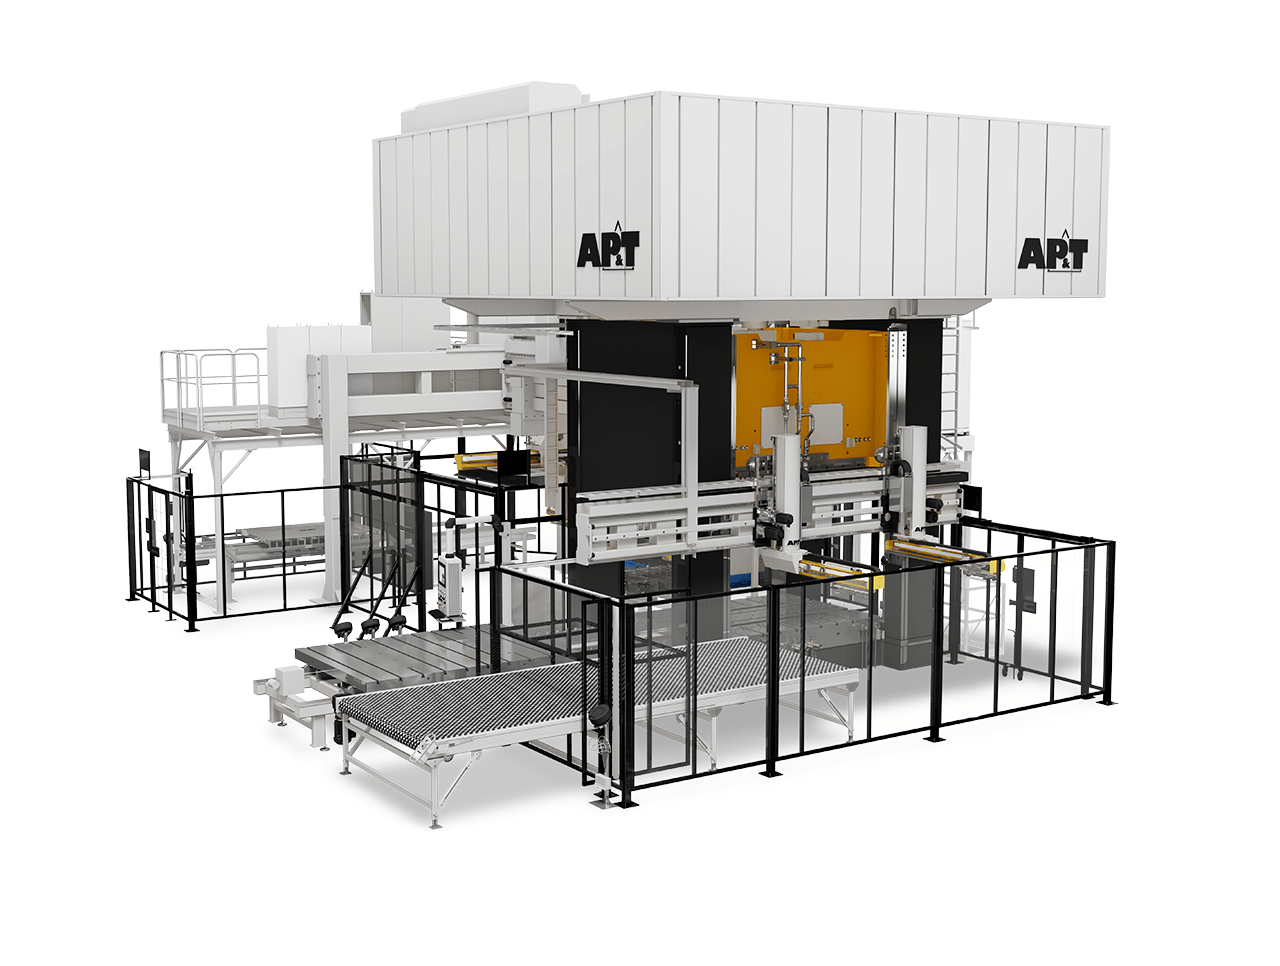 AP&T's new production line for hot forming of high-strength aluminum enables the weight of car body parts to be reduced up to 50 percent.